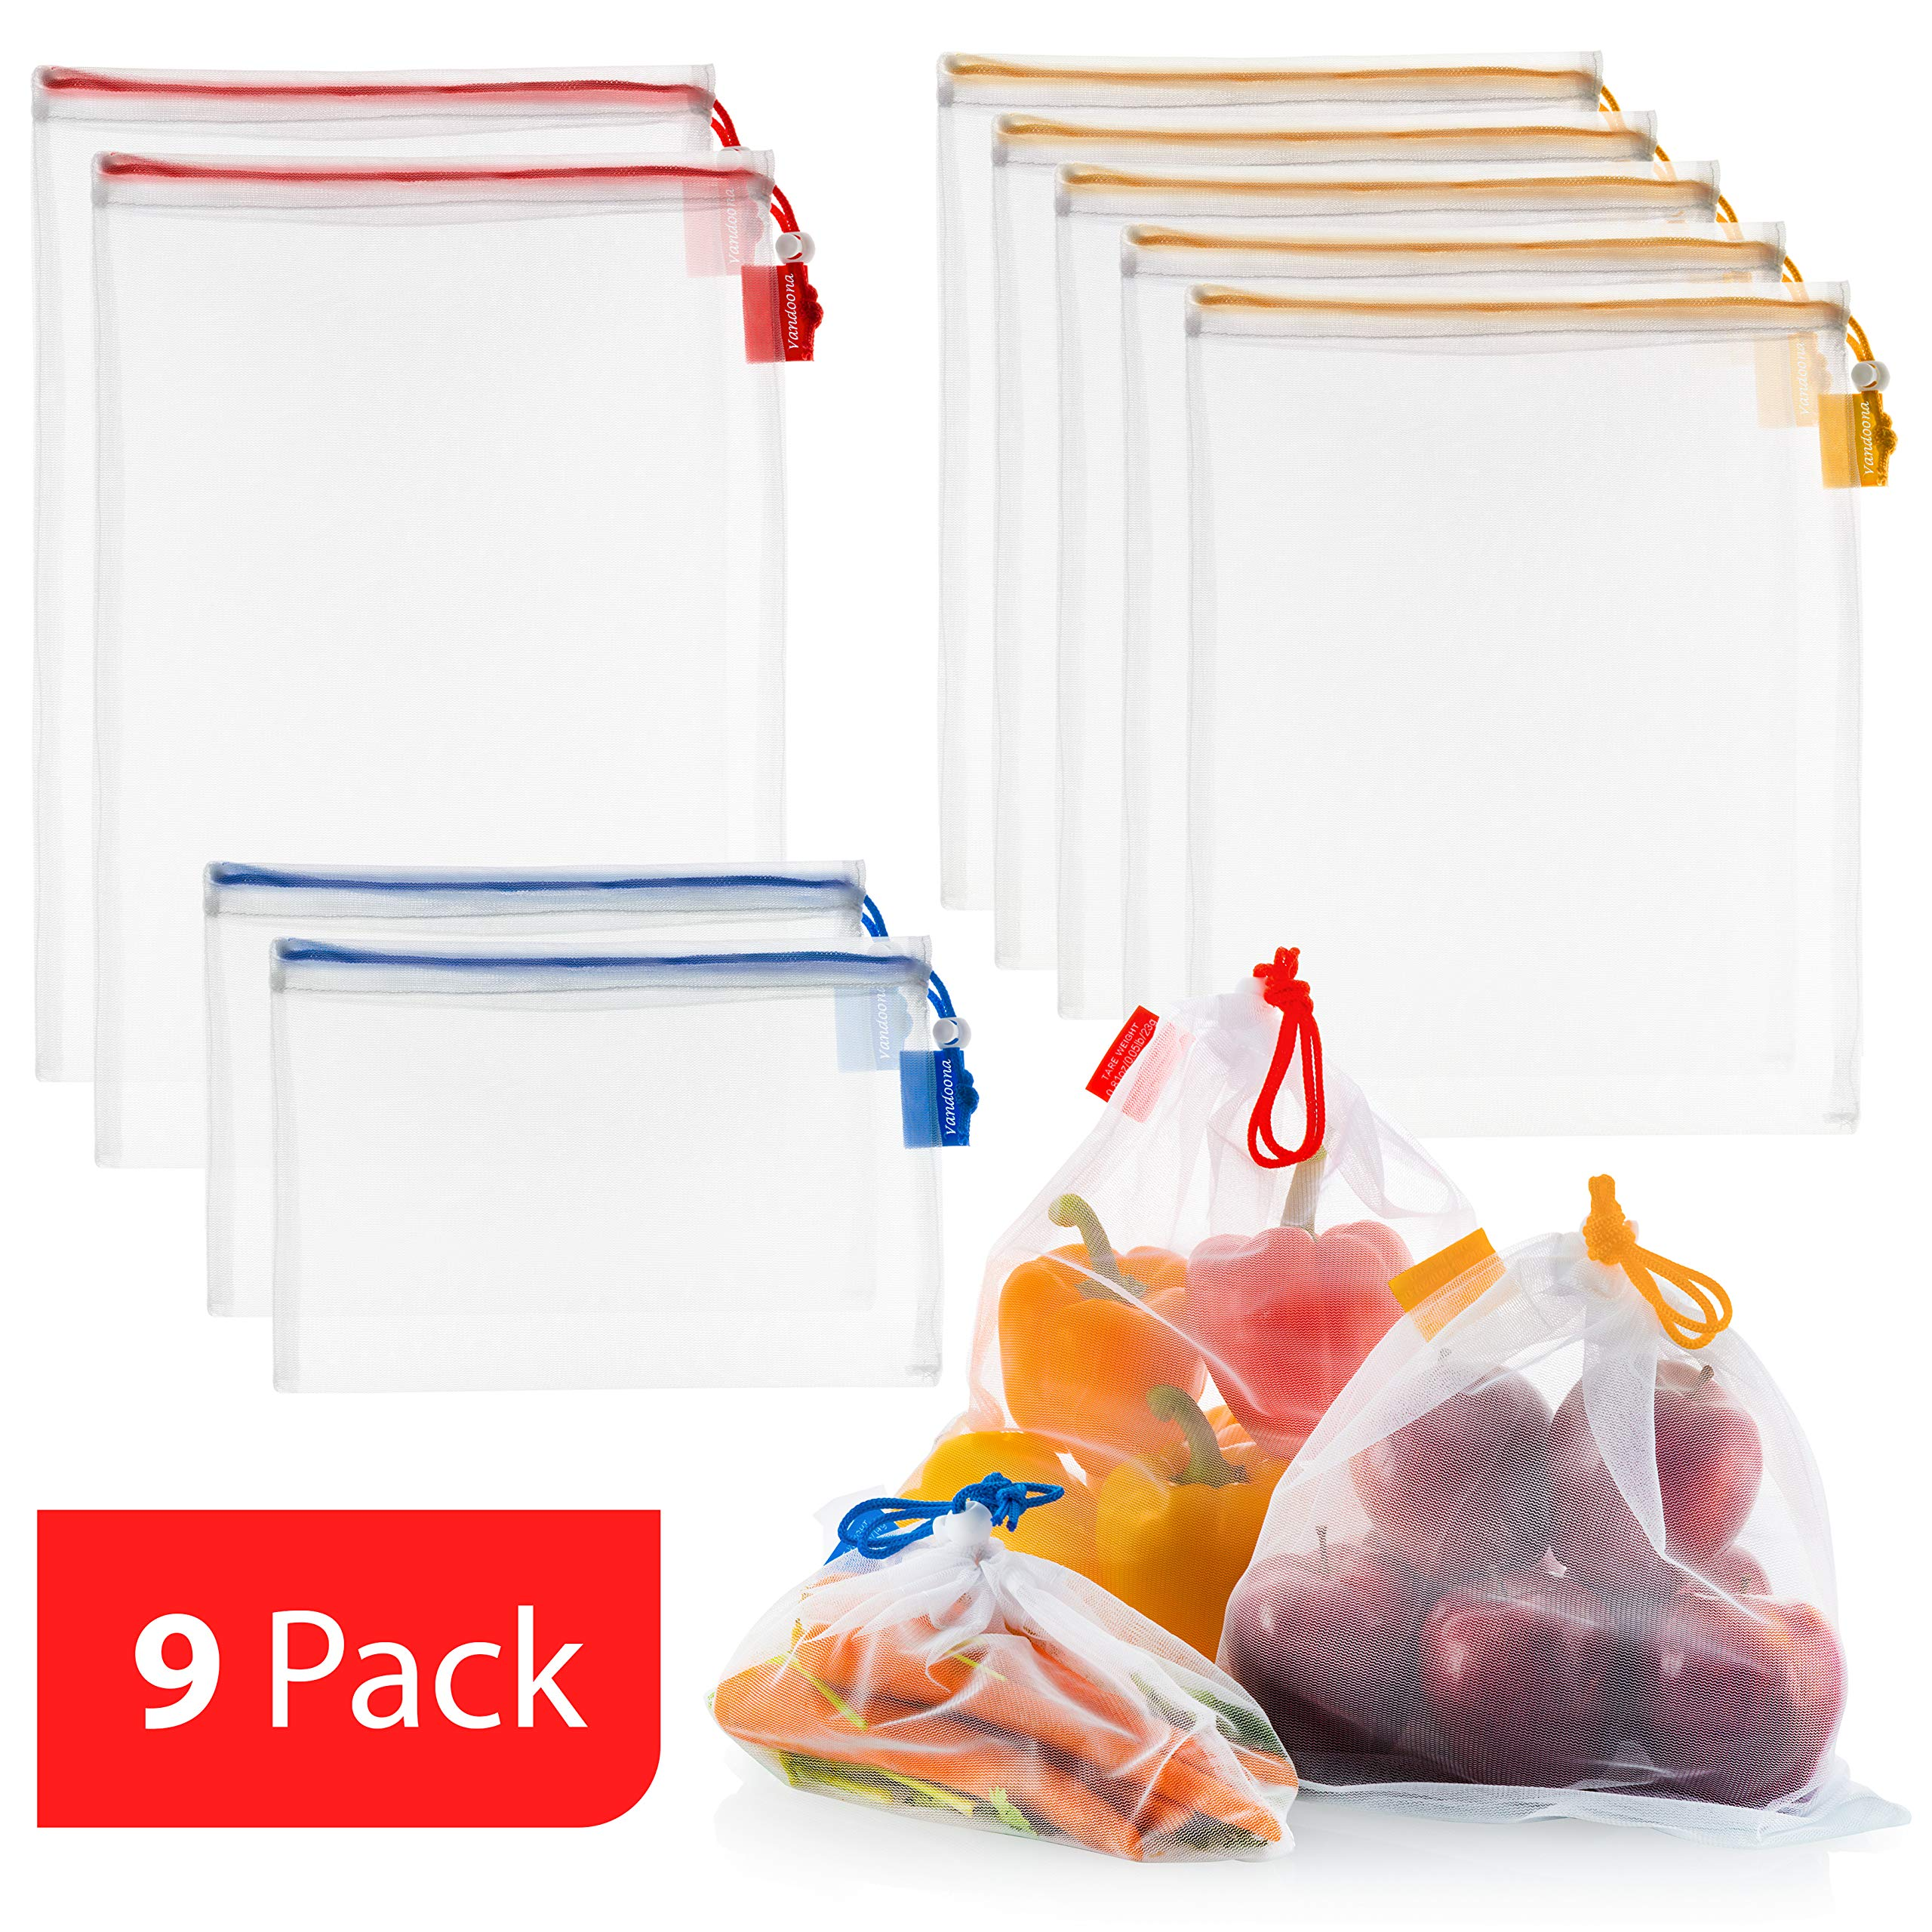 Vandoona Reusable Mesh Produce Bags, Eco Friendly Washable TRANSPARENT Strong Premium Mesh for Fruits & Veggies Grocery Shopping,